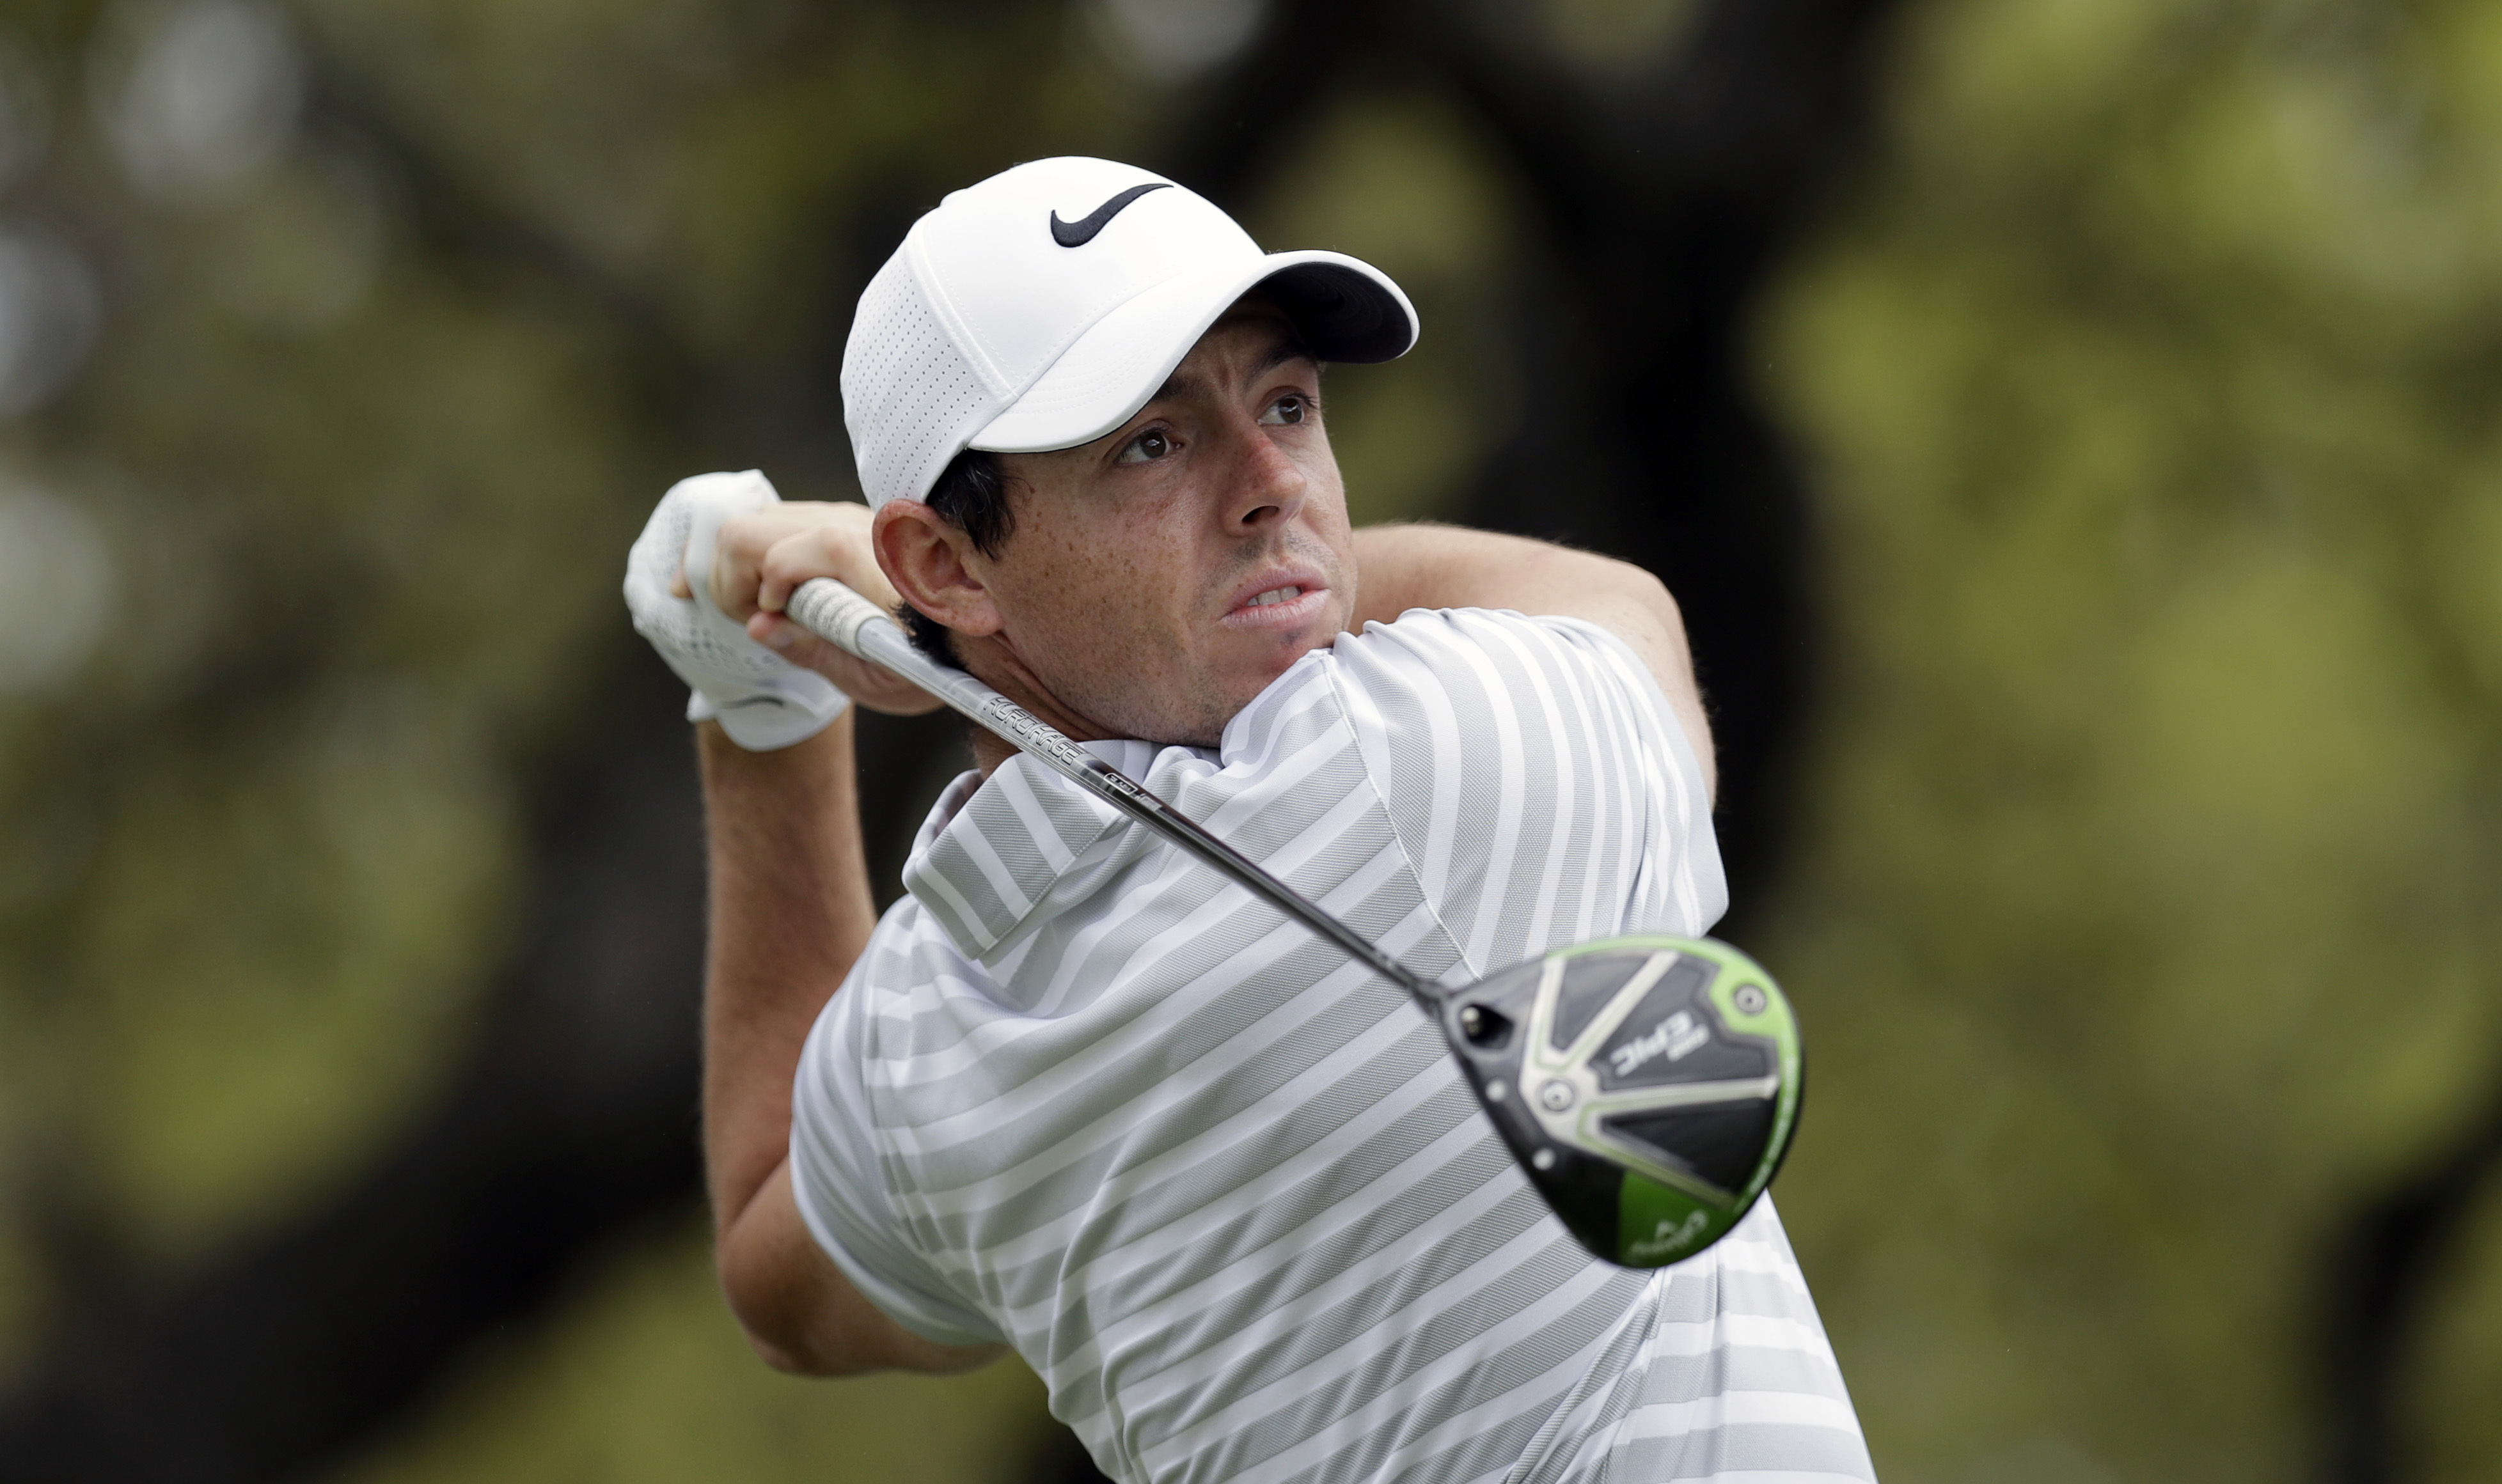 Rory McIlroy, of Northern Ireland, watches his drive on the first hole during round-robin play against Soren Kjeldsen, of Denmark, at the Dell Technologies Match Play golf tournament at Austin County Club, Wednesday, March 22, 2017, in Austin, Texas. (AP